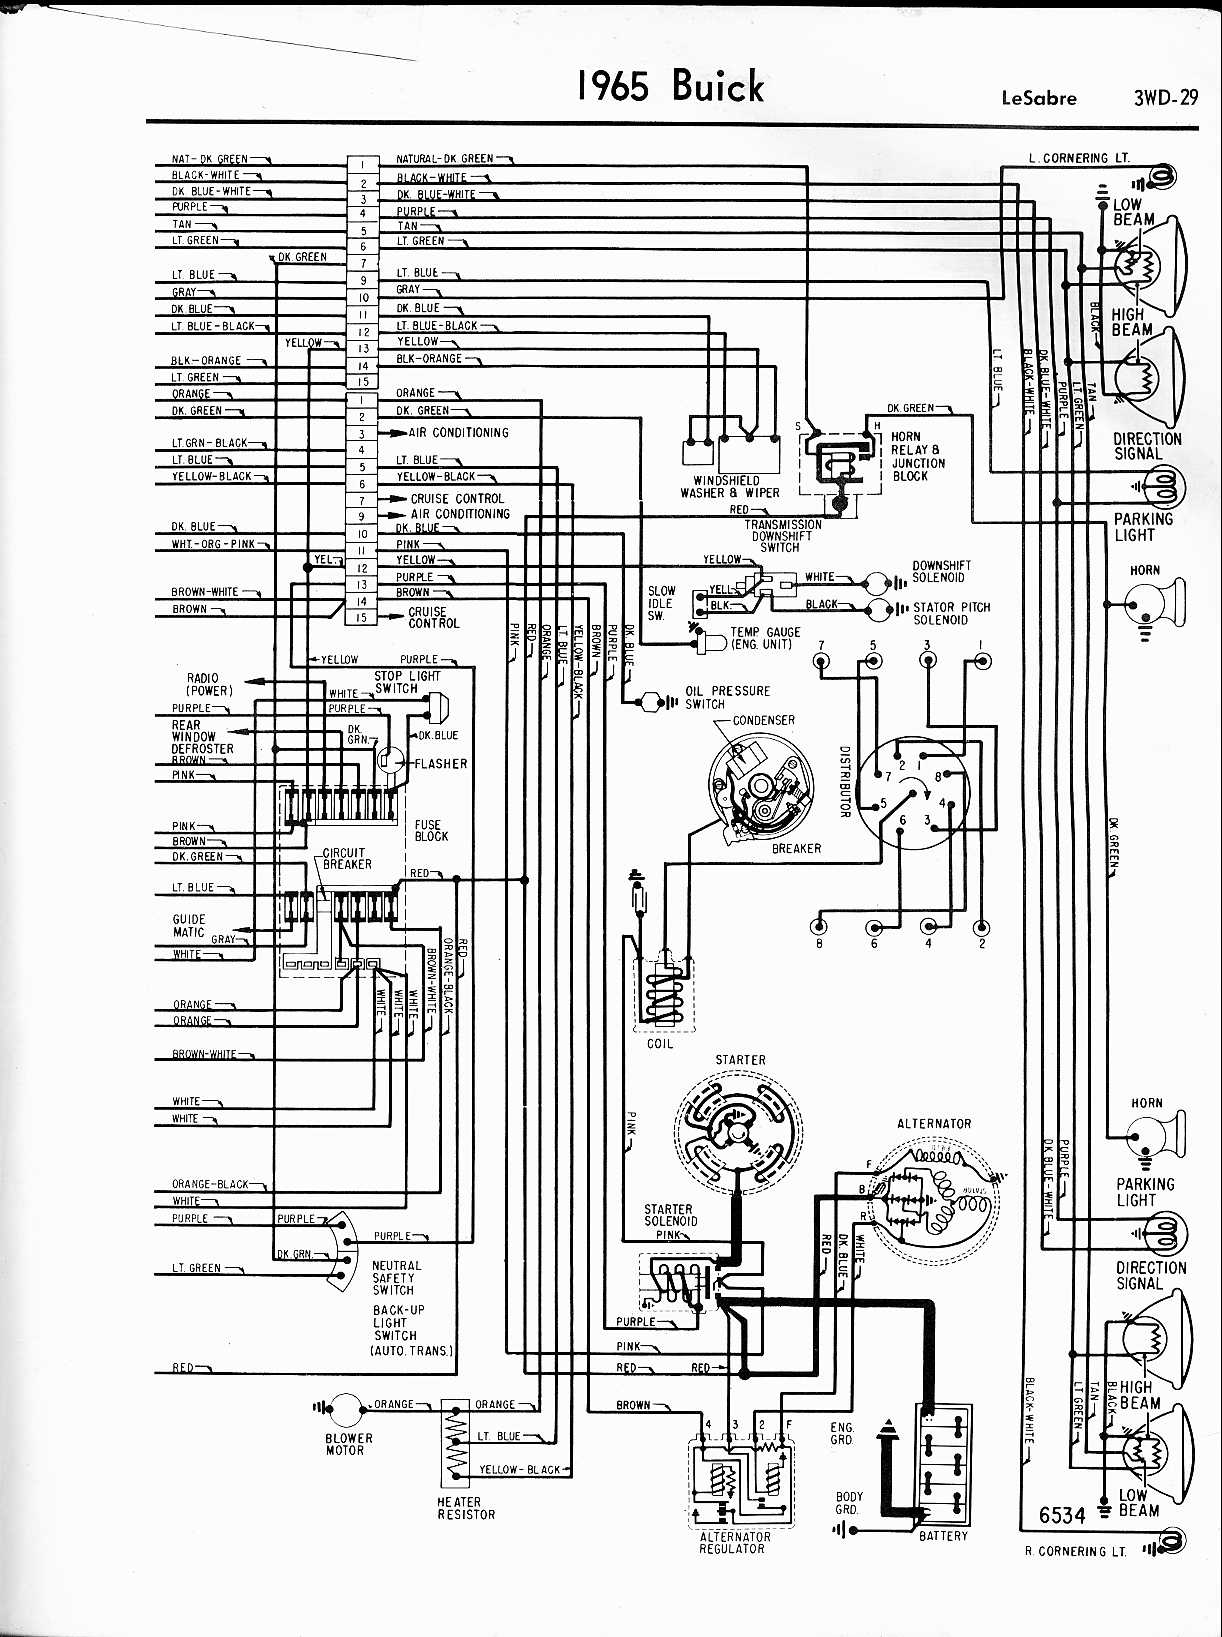 trail wagon wiring schematic fuse box 1991 oldsmobile cutlass supreme | wiring library #9